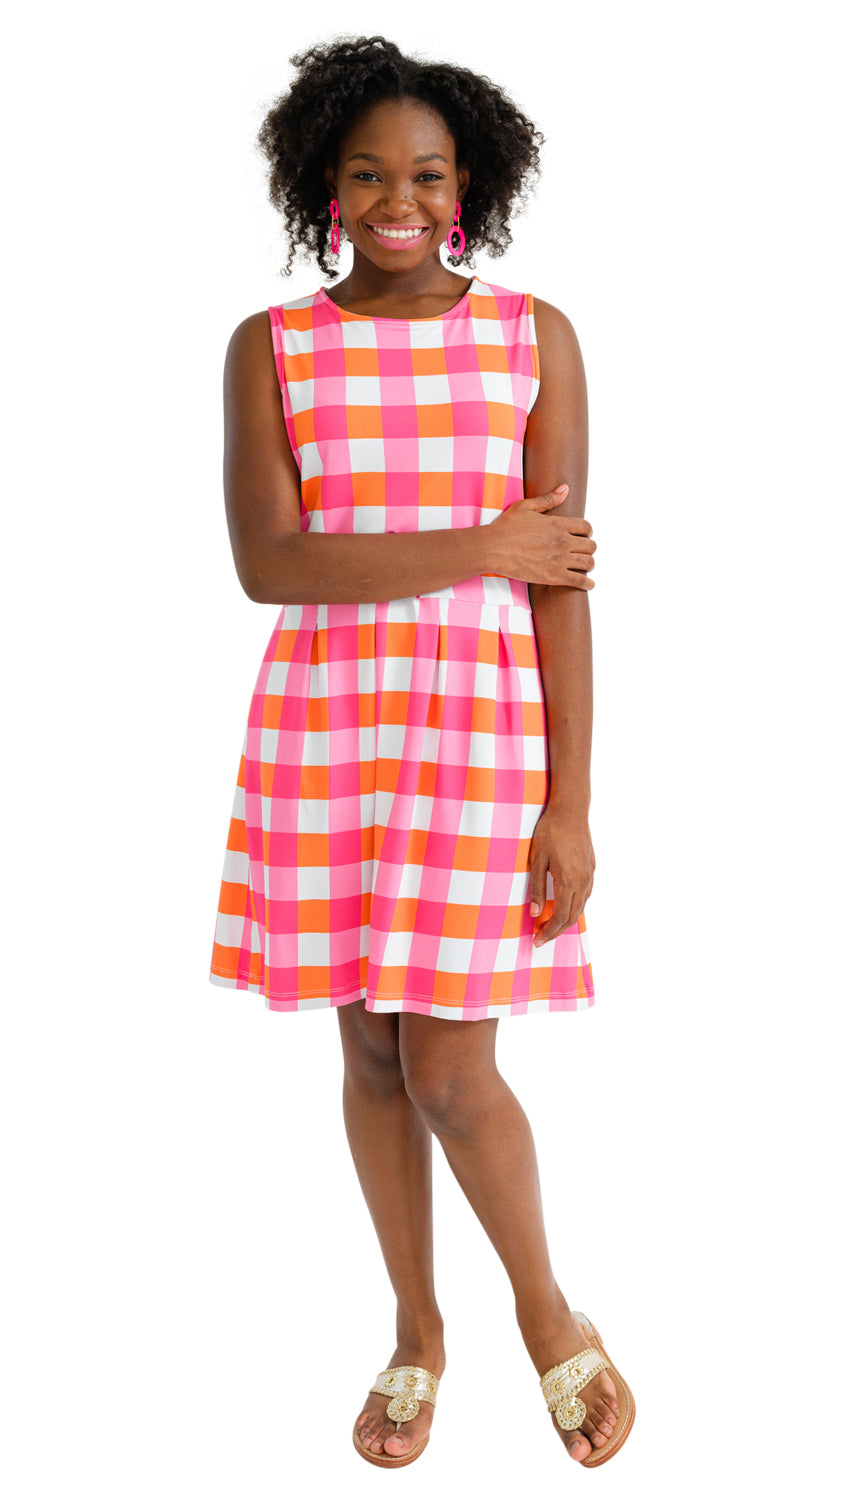 Boardwalk Dress - Pink/Orange Chatham Check